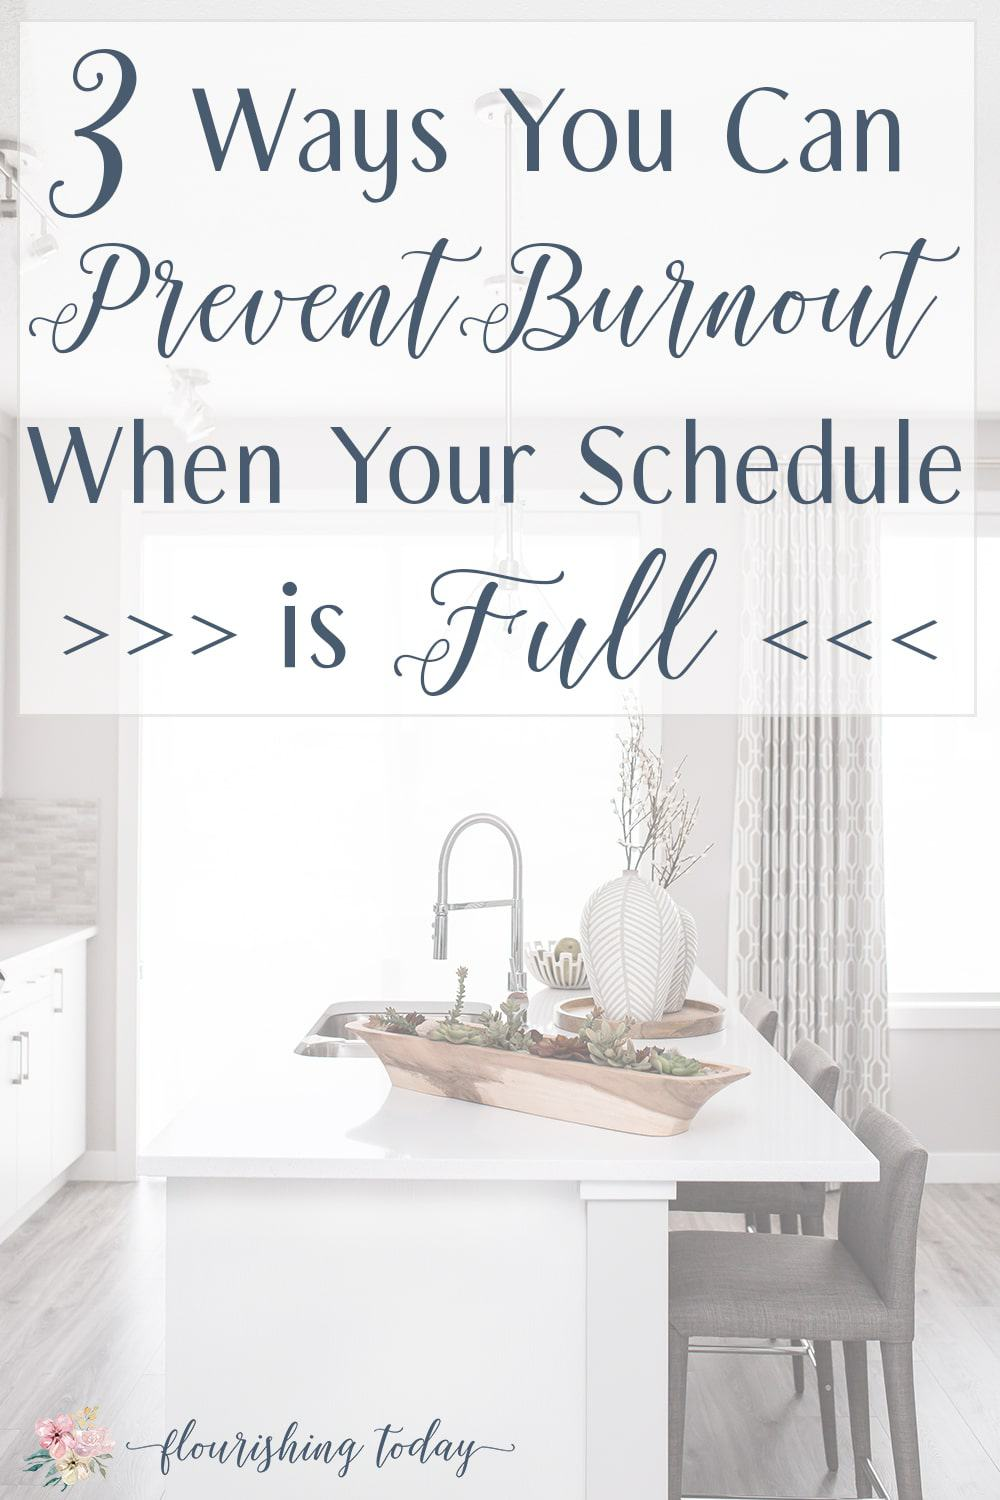 Do you find yourself overwhelmed by the load you are carrying every day? Here are 3 ways to prevent burnout when your schedule is full. #burnout #peace